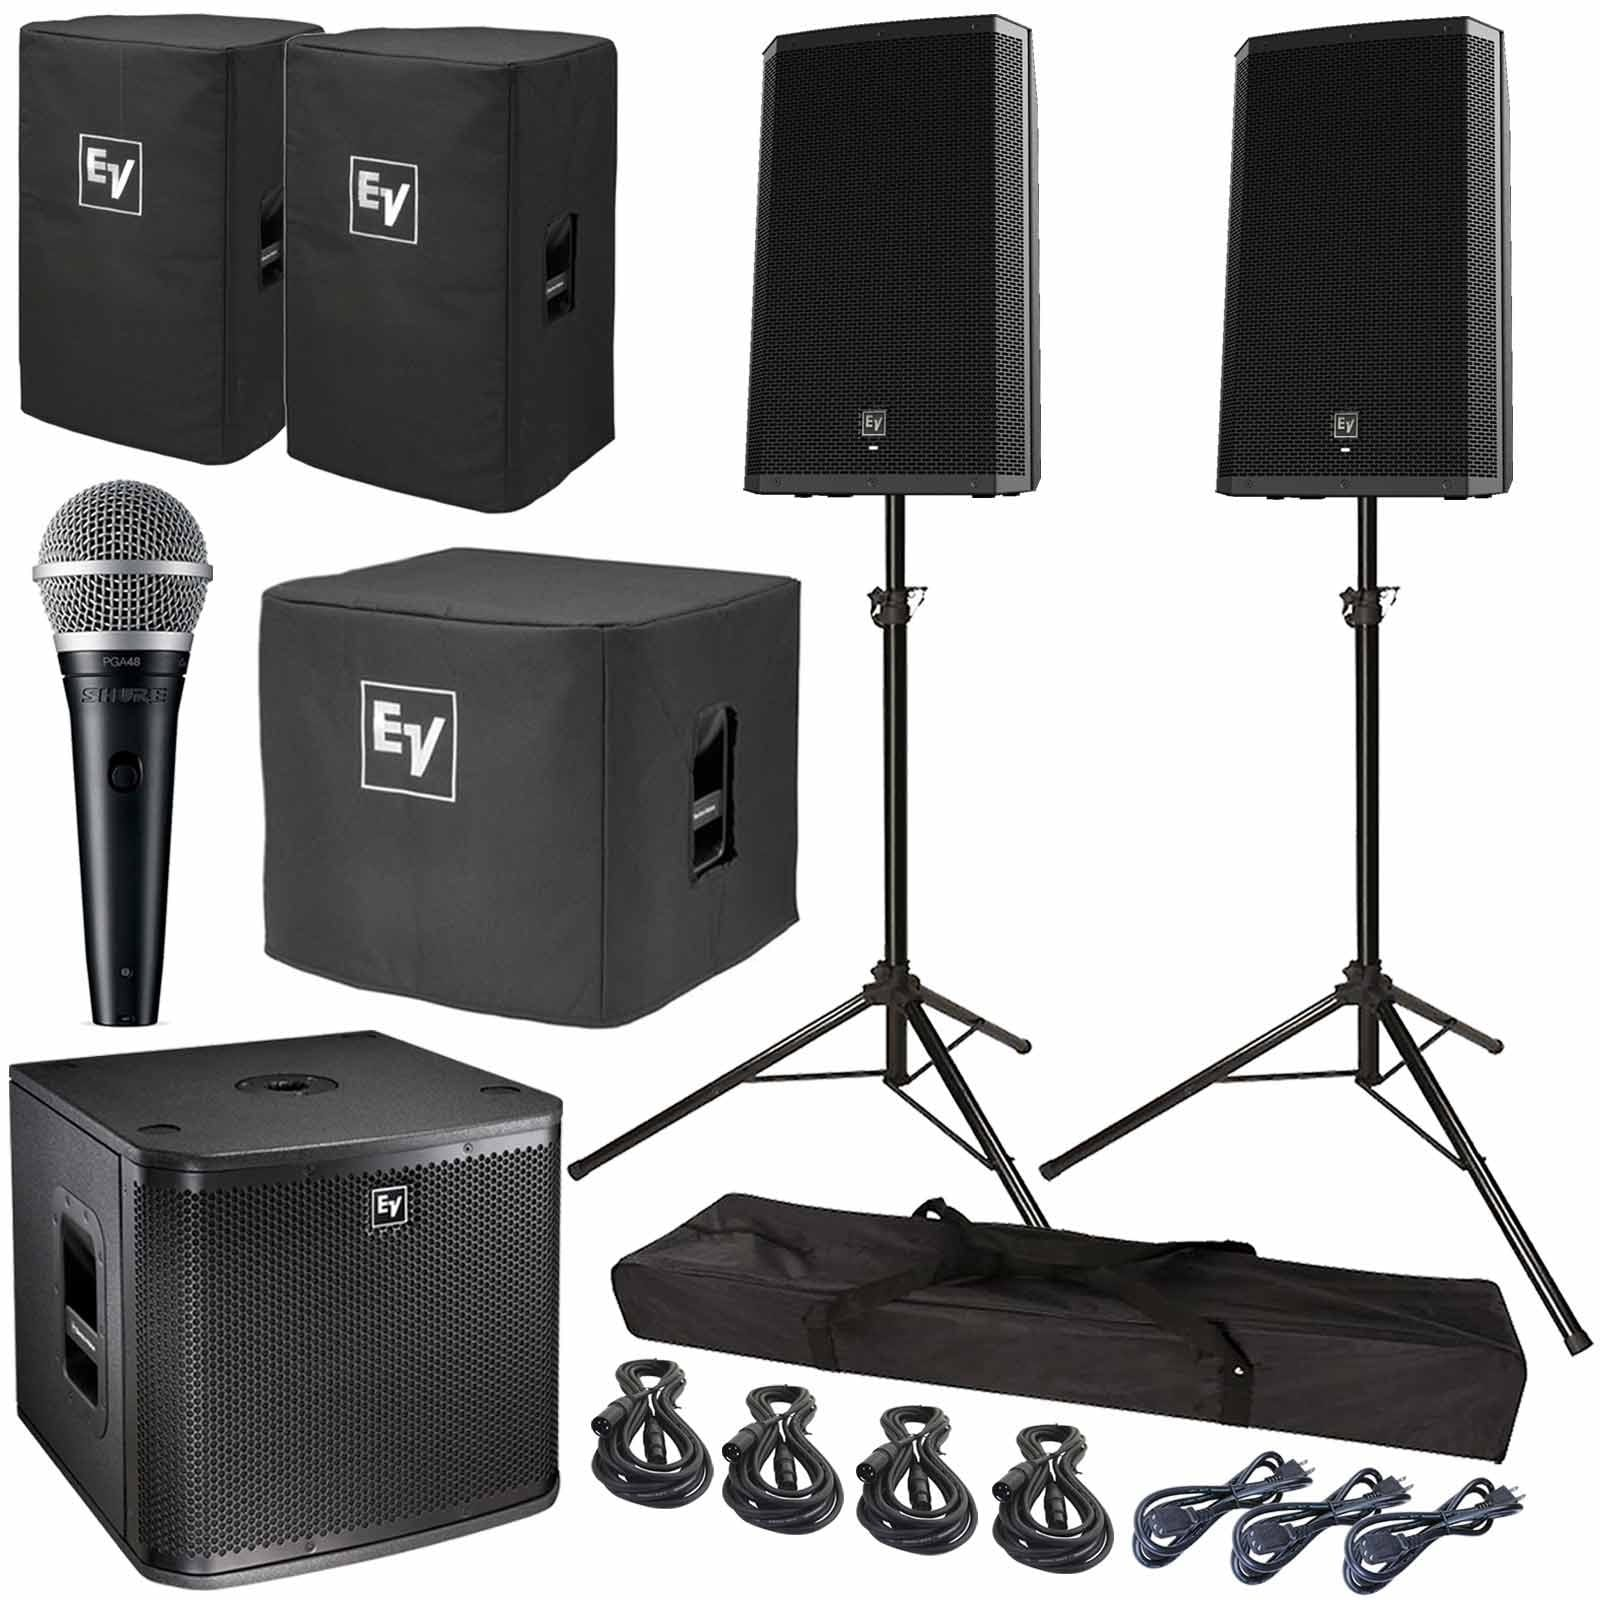 electro-voice-zlx-15p-15-powered-speaker-subwoofer-package-c2f